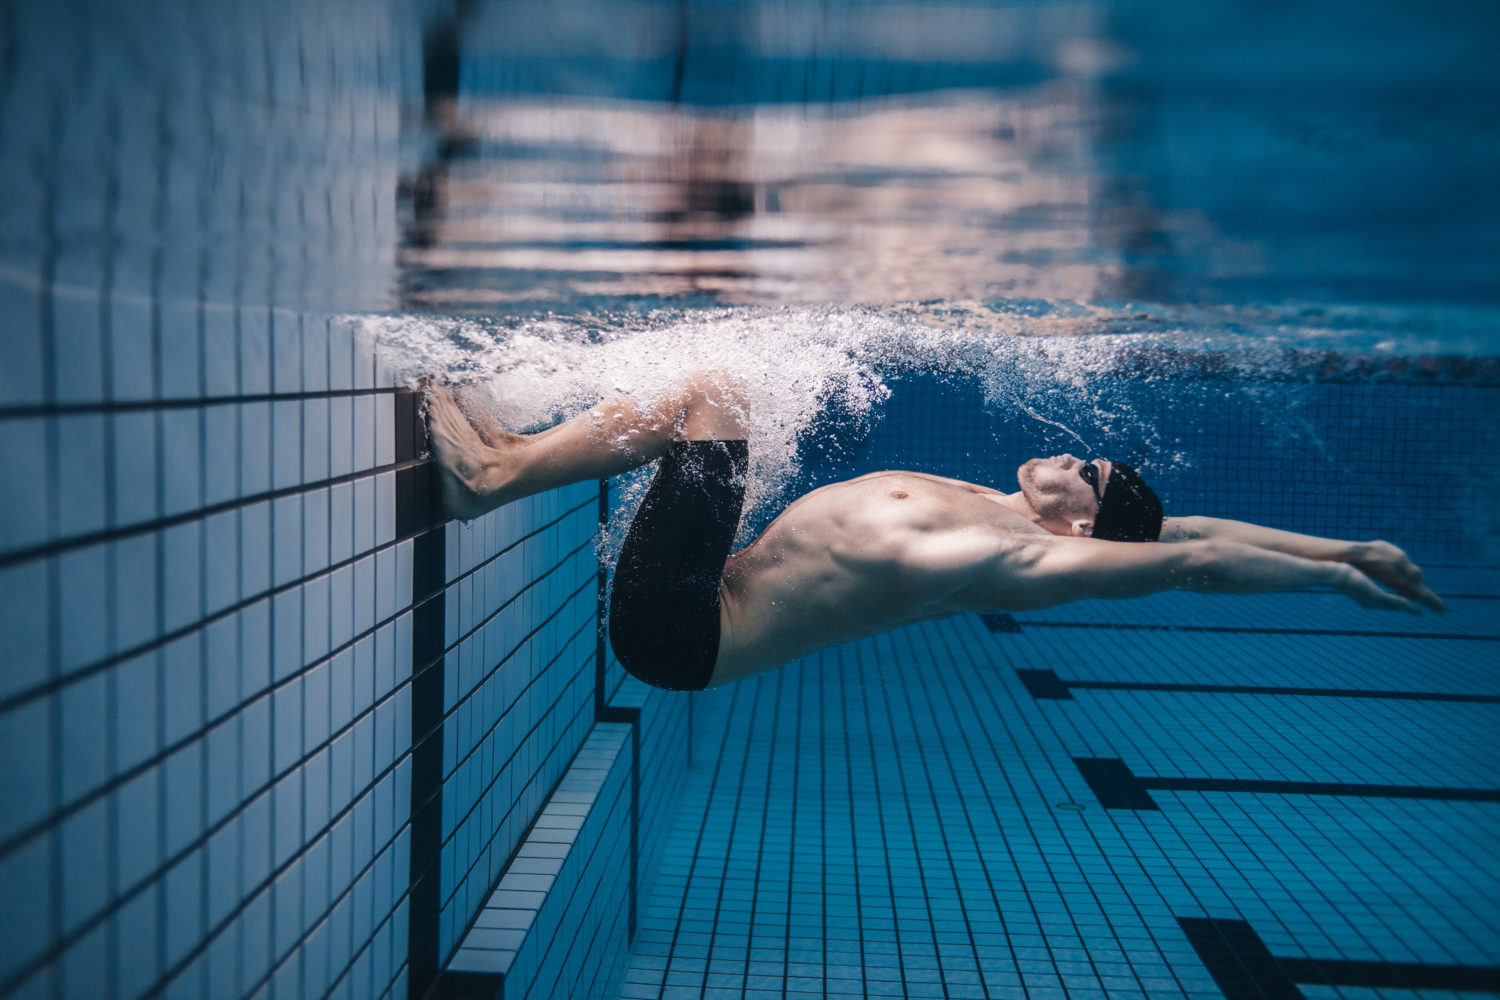 SwimGym Amsterdam is the coaching swimming pool where swimmers & triathletes can train under professional guidance. Train Like A Pro.